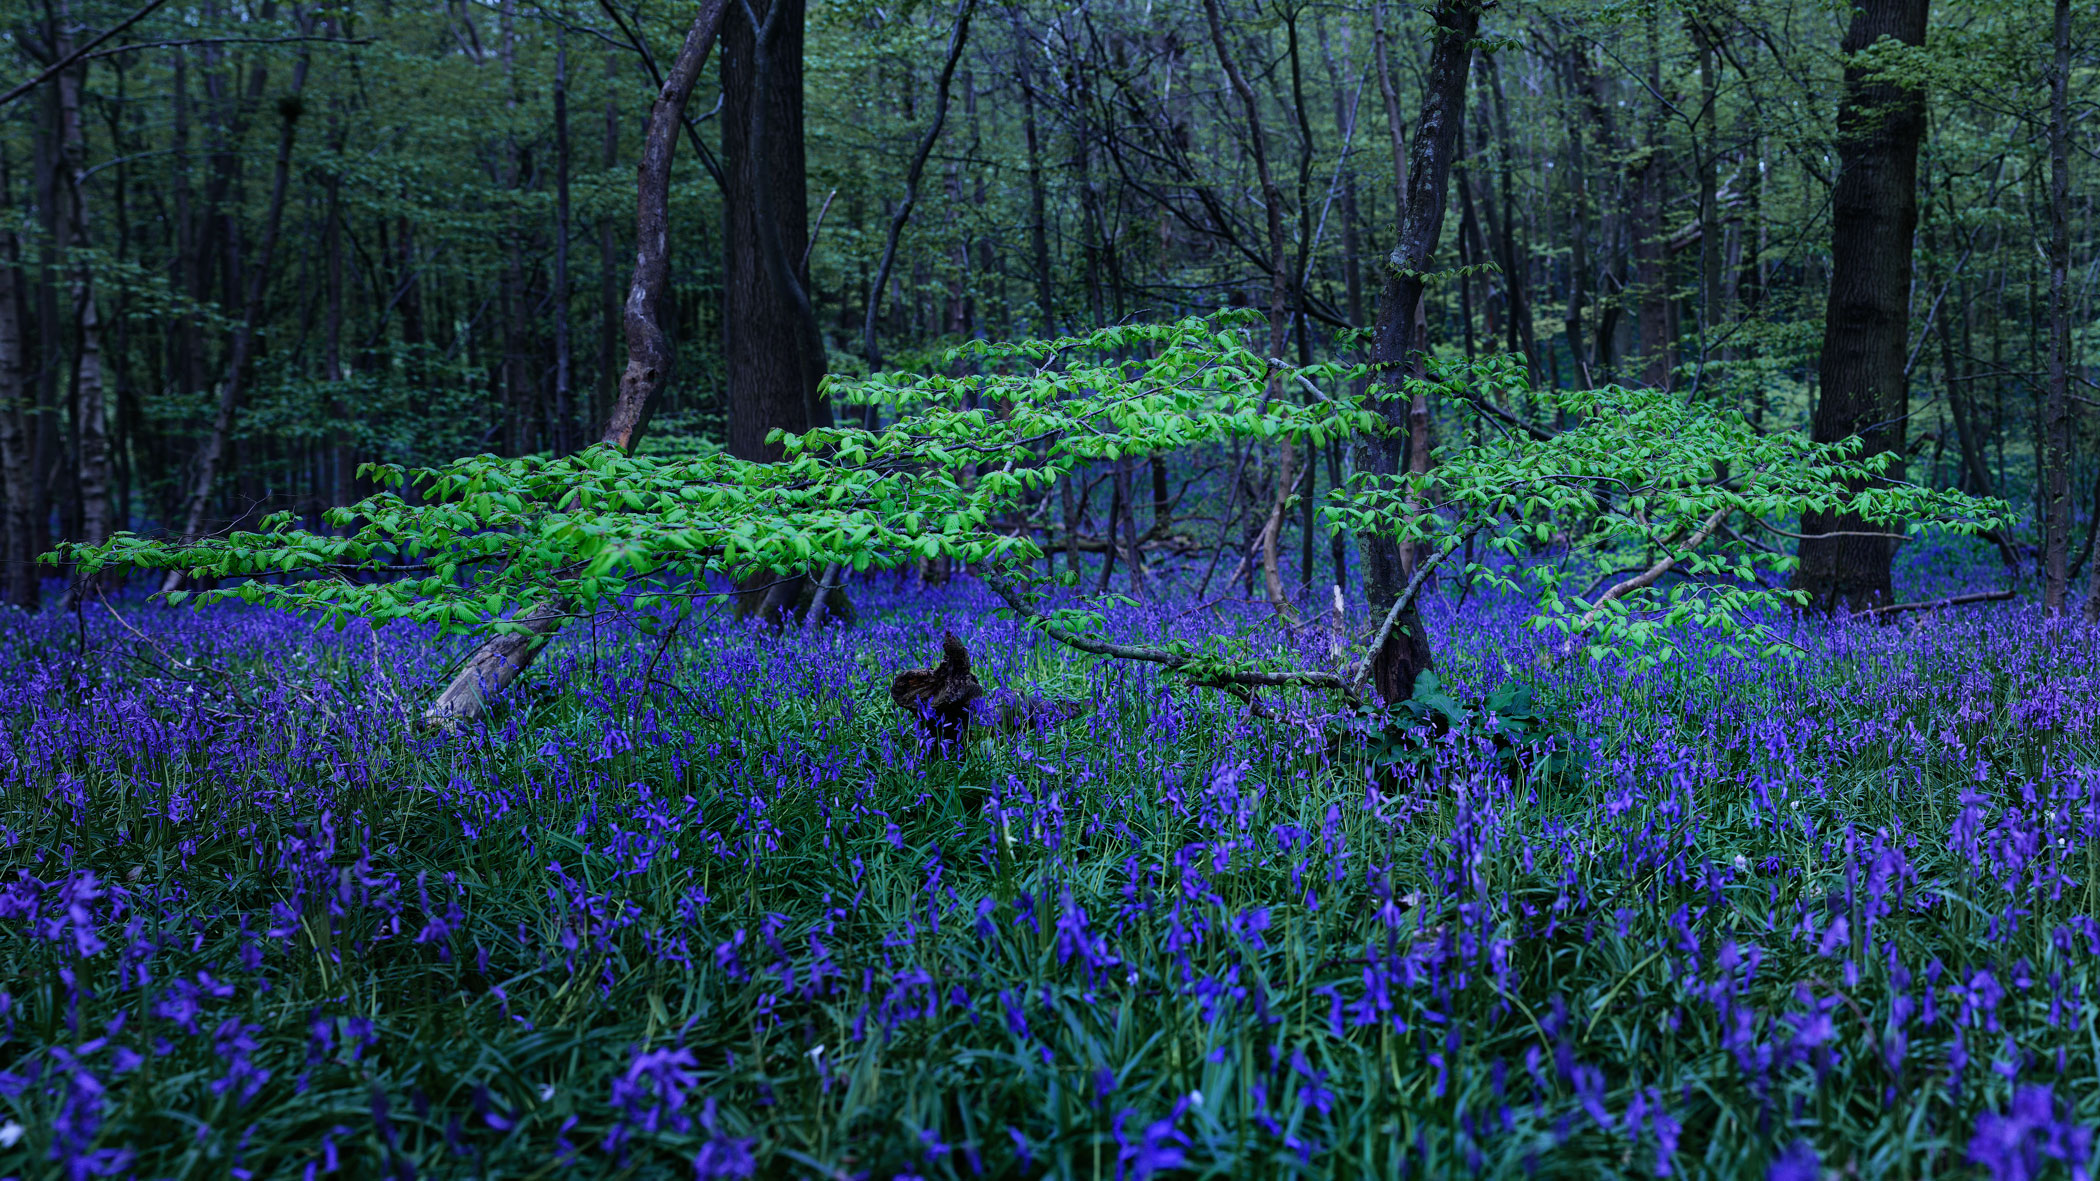 2019.04.13-Pre-Dawn-Bluebell-Woods-169-WEB.jpg